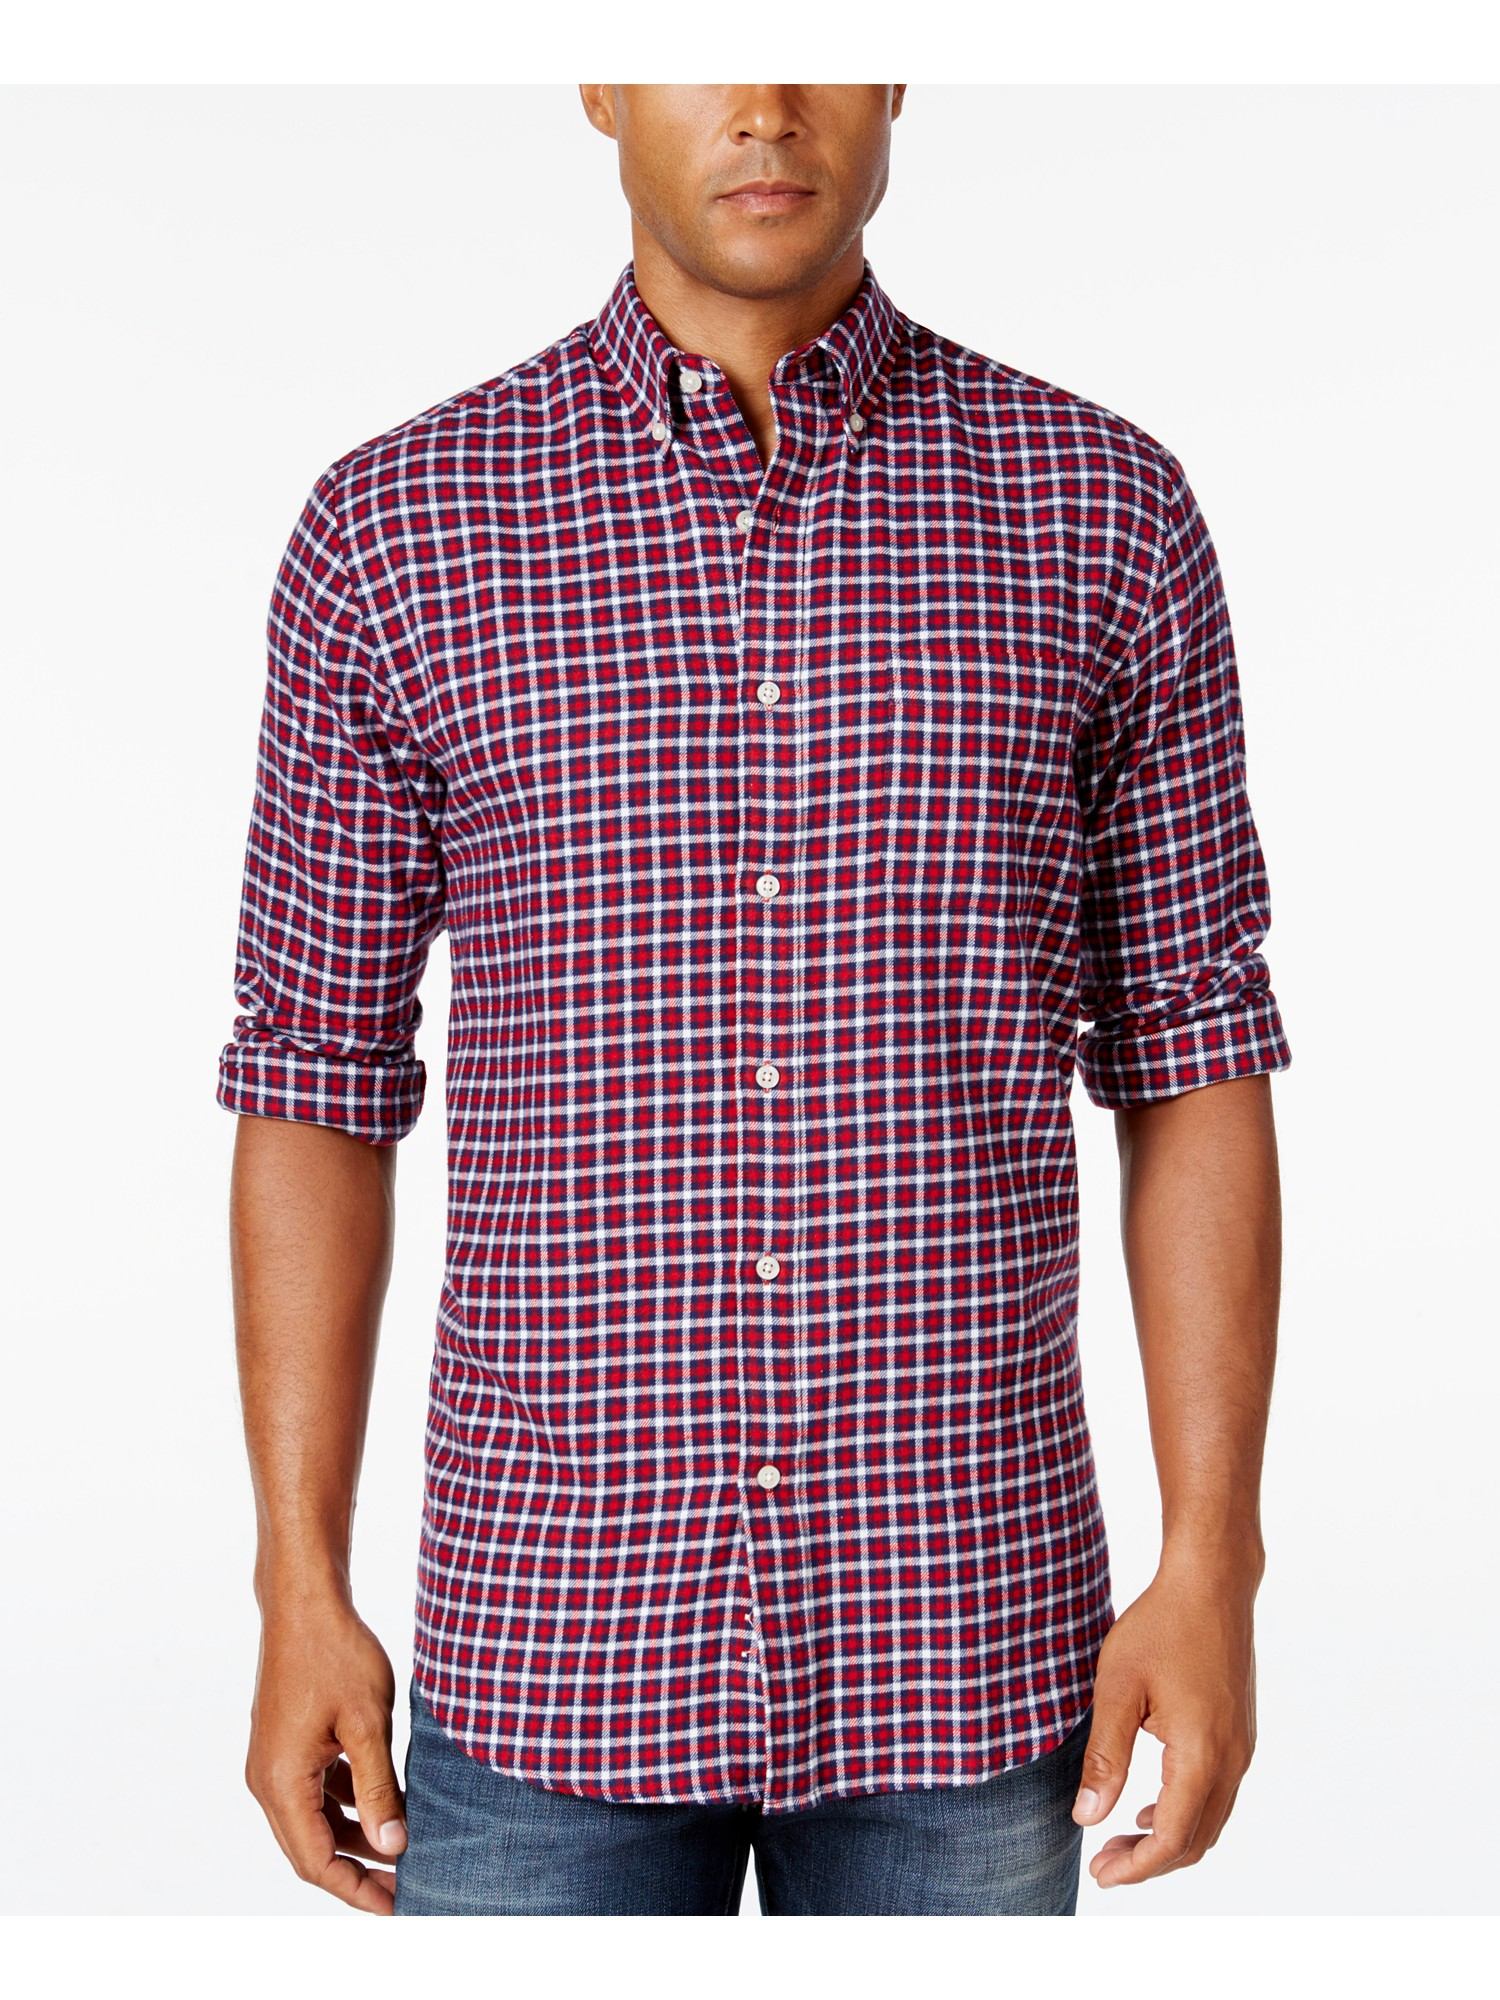 Assorted Colors John Ashford Men/'s Long-Sleeve Flannel Shirt